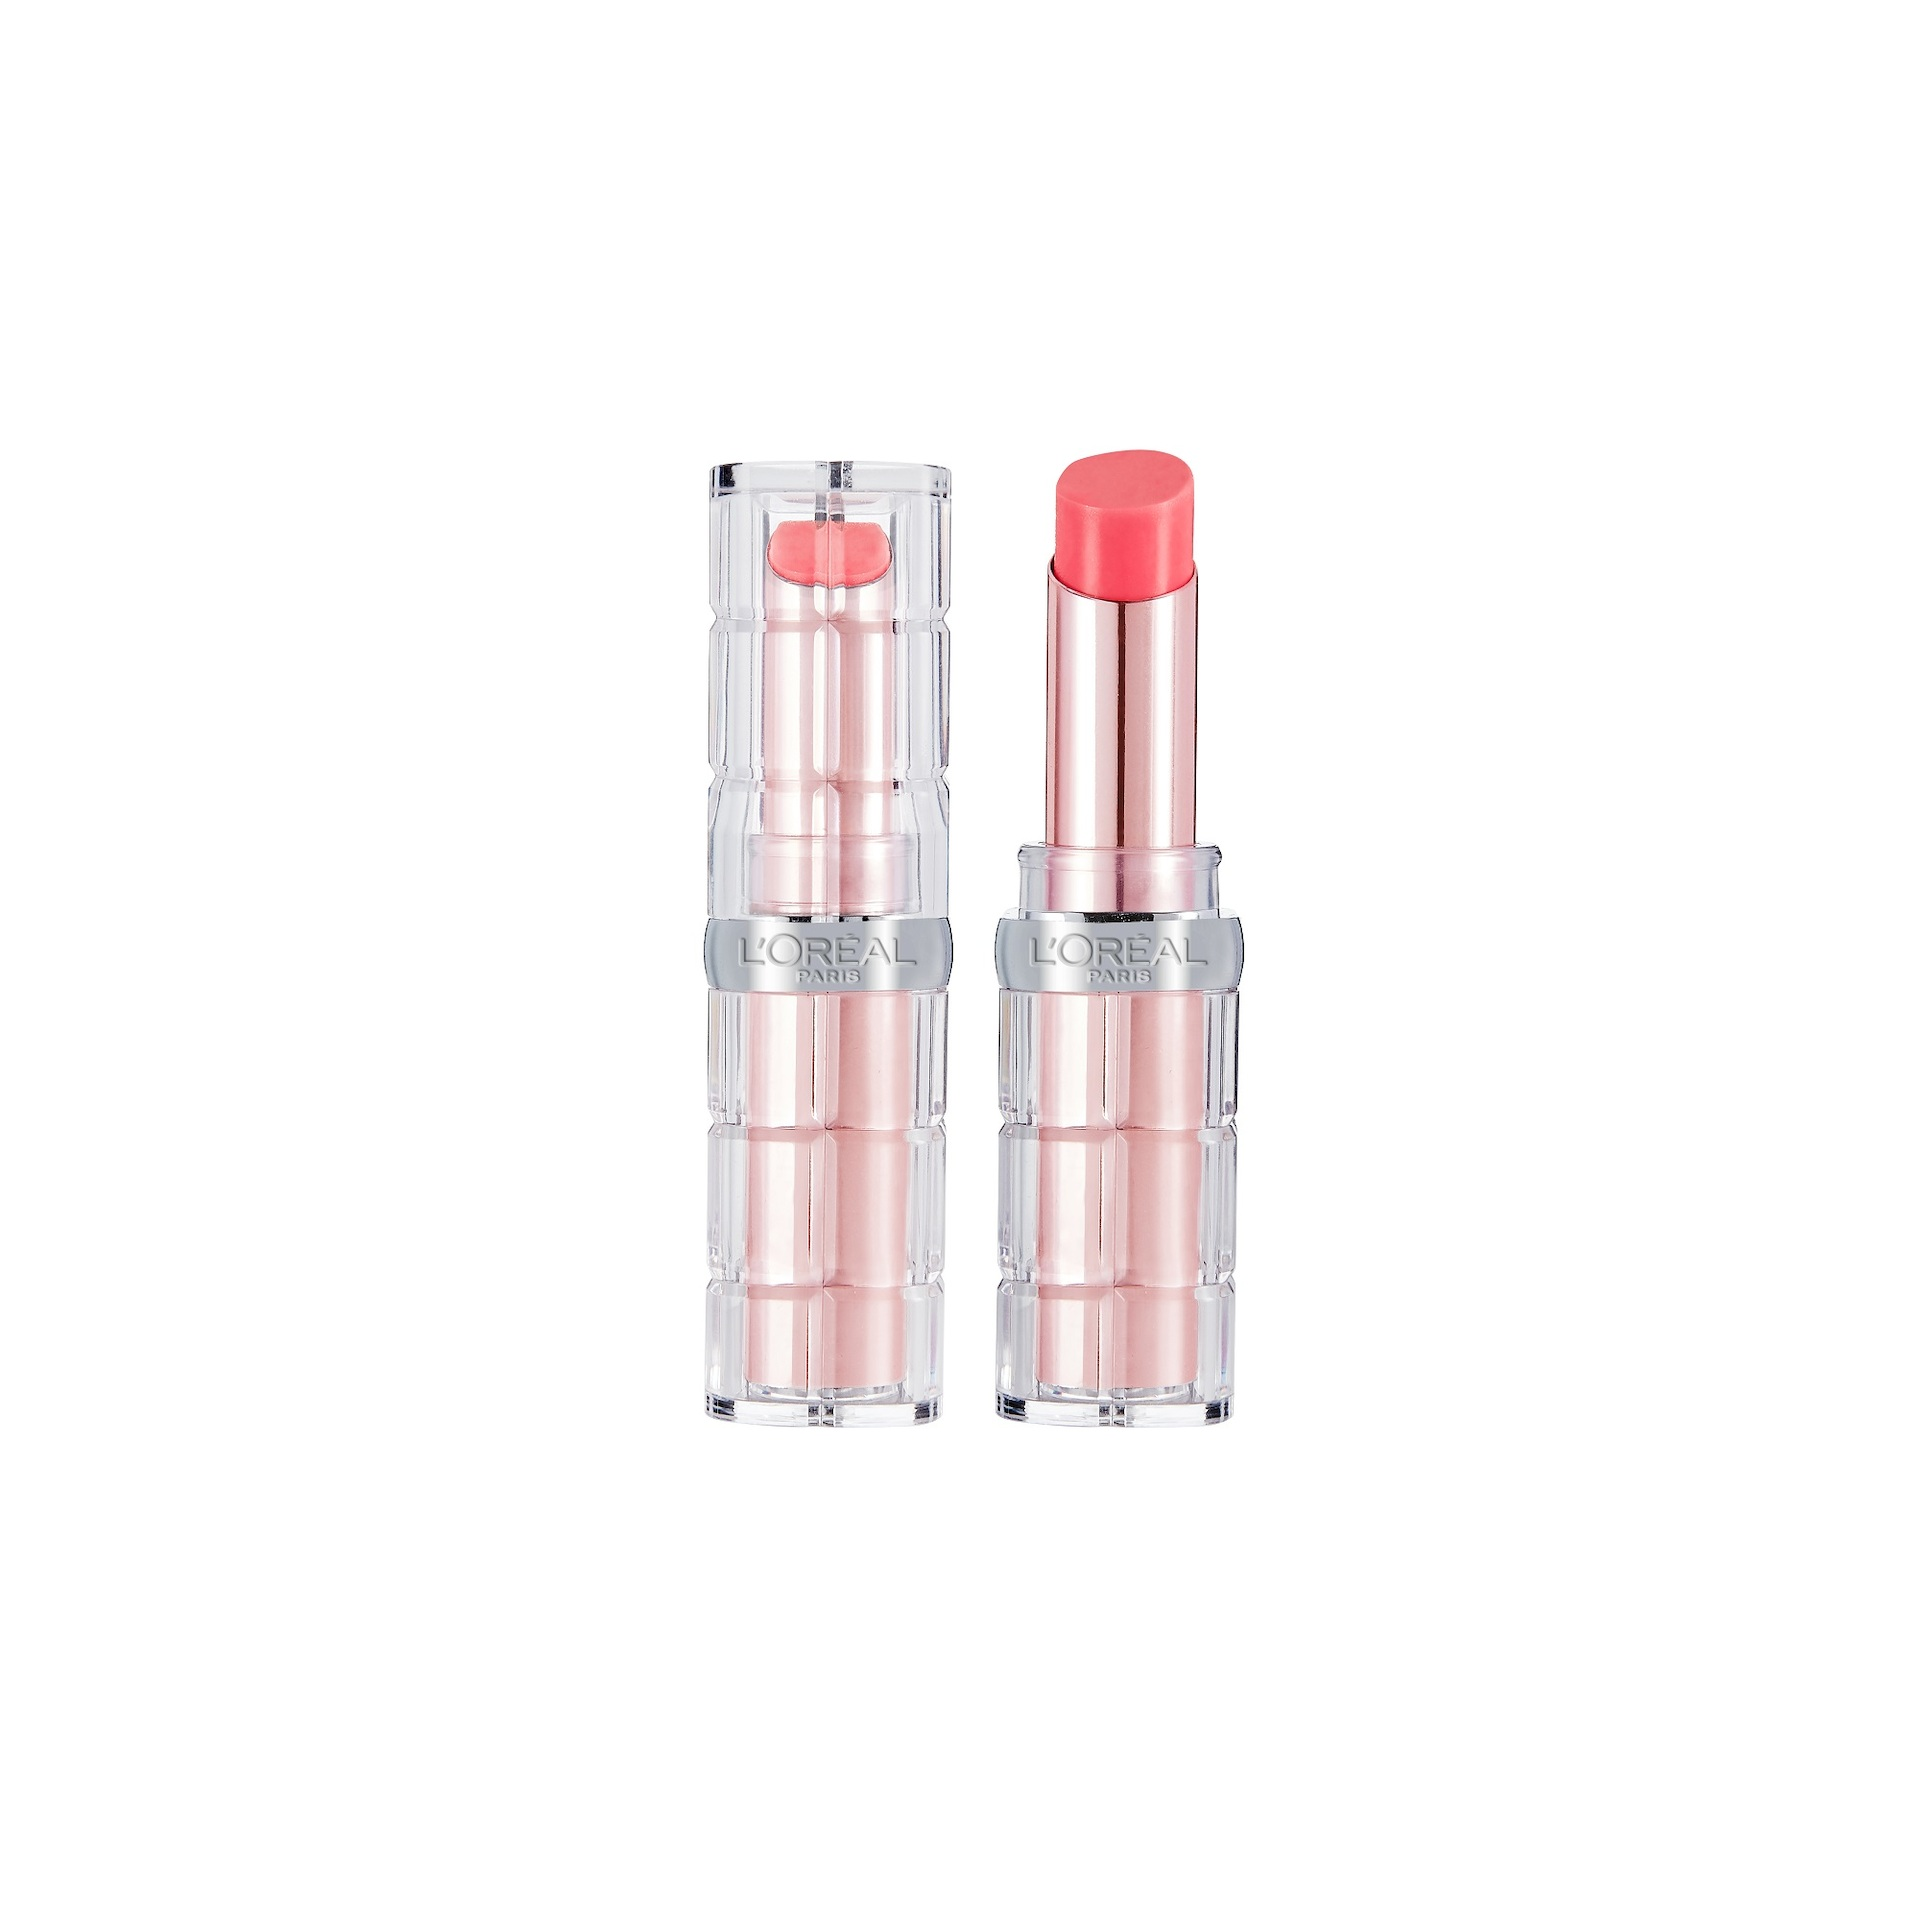 Color Riche Plump'n Glow Lipstick 104 Guava Plump